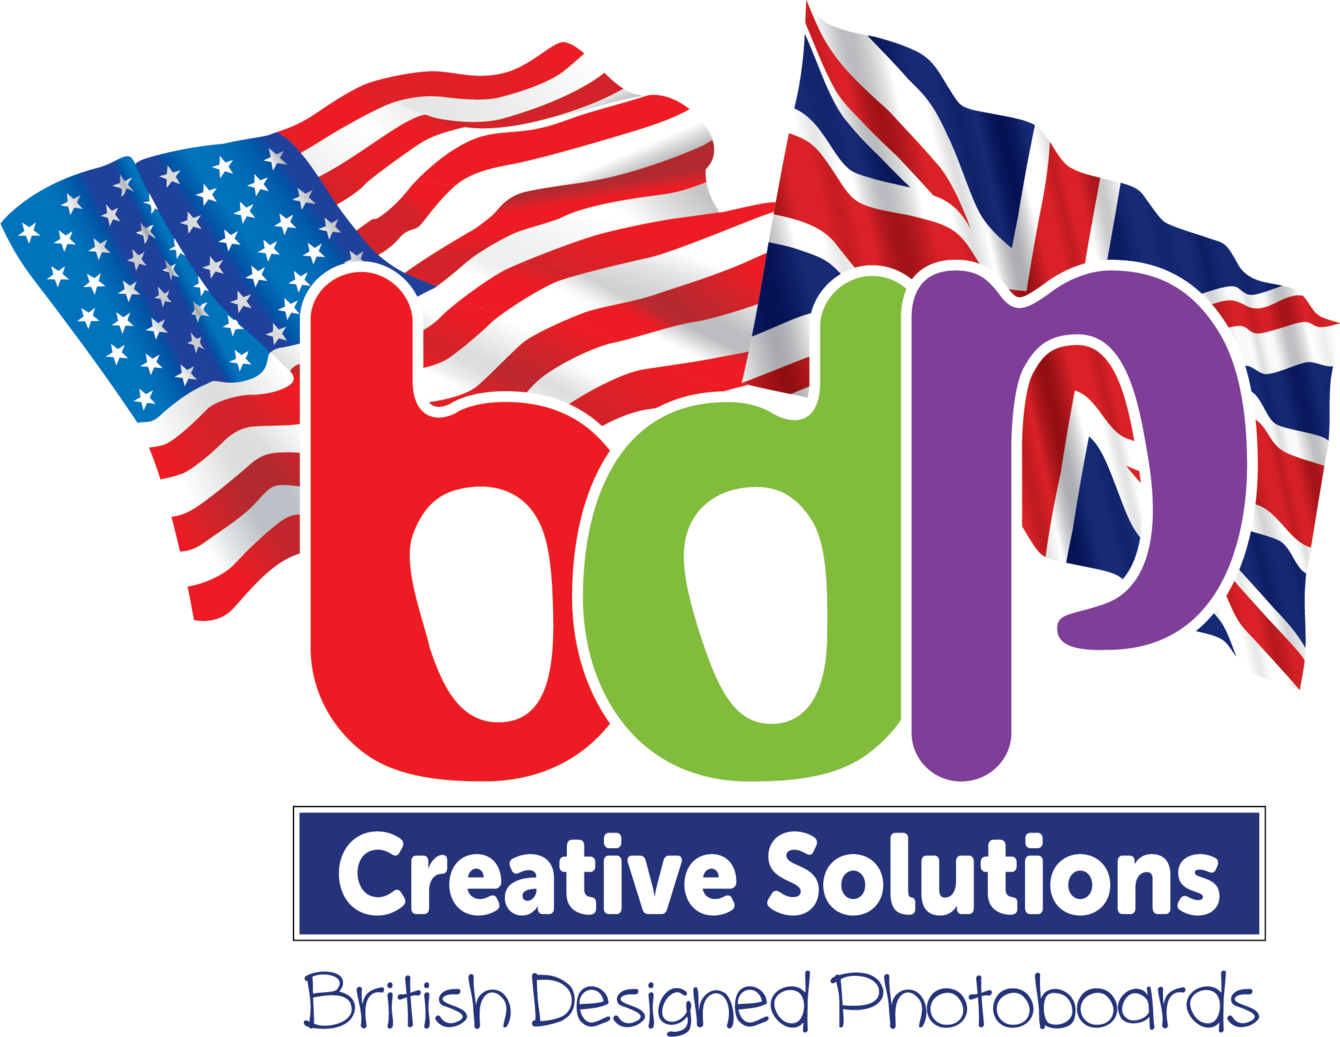 BDP Creative Solutions Ltd